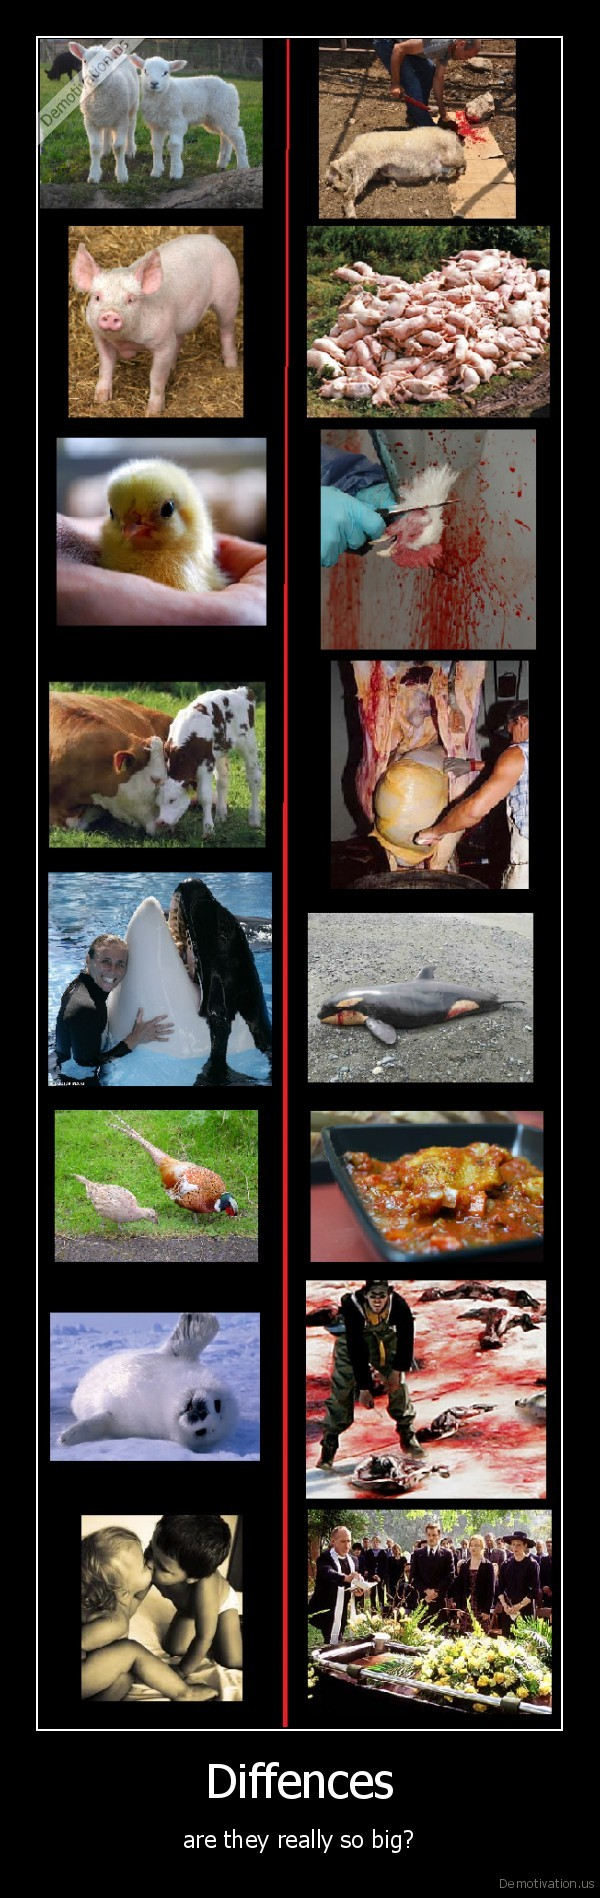 meat,flash,eating,food,vegetarian,vegetables,diffrences,death,life,kill